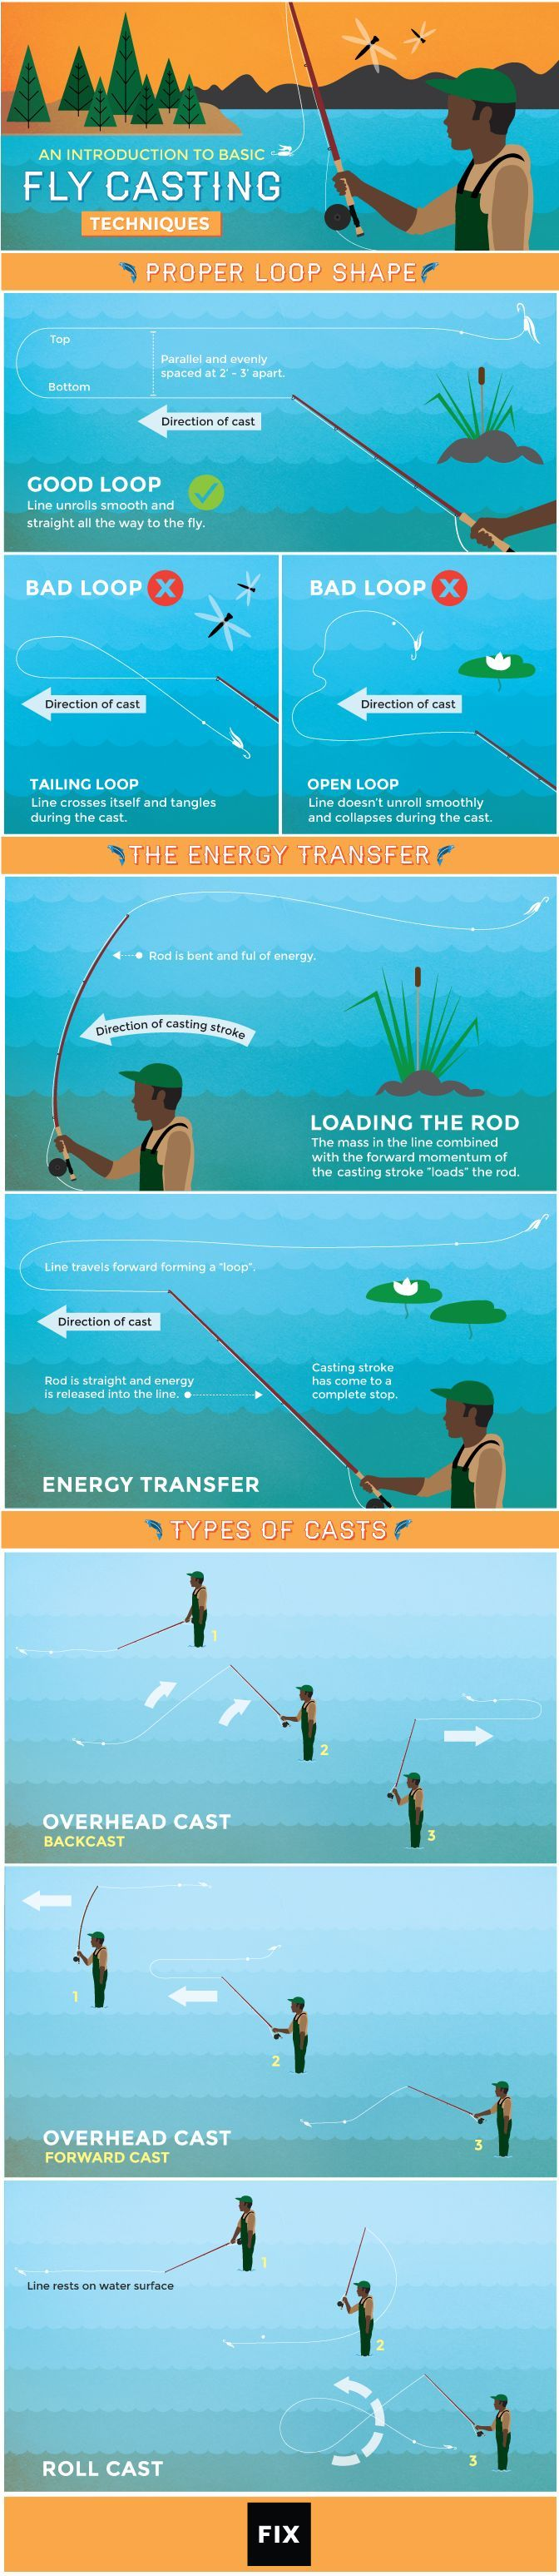 25 best ideas about fly fishing knots on pinterest easy for Fly fishing techniques